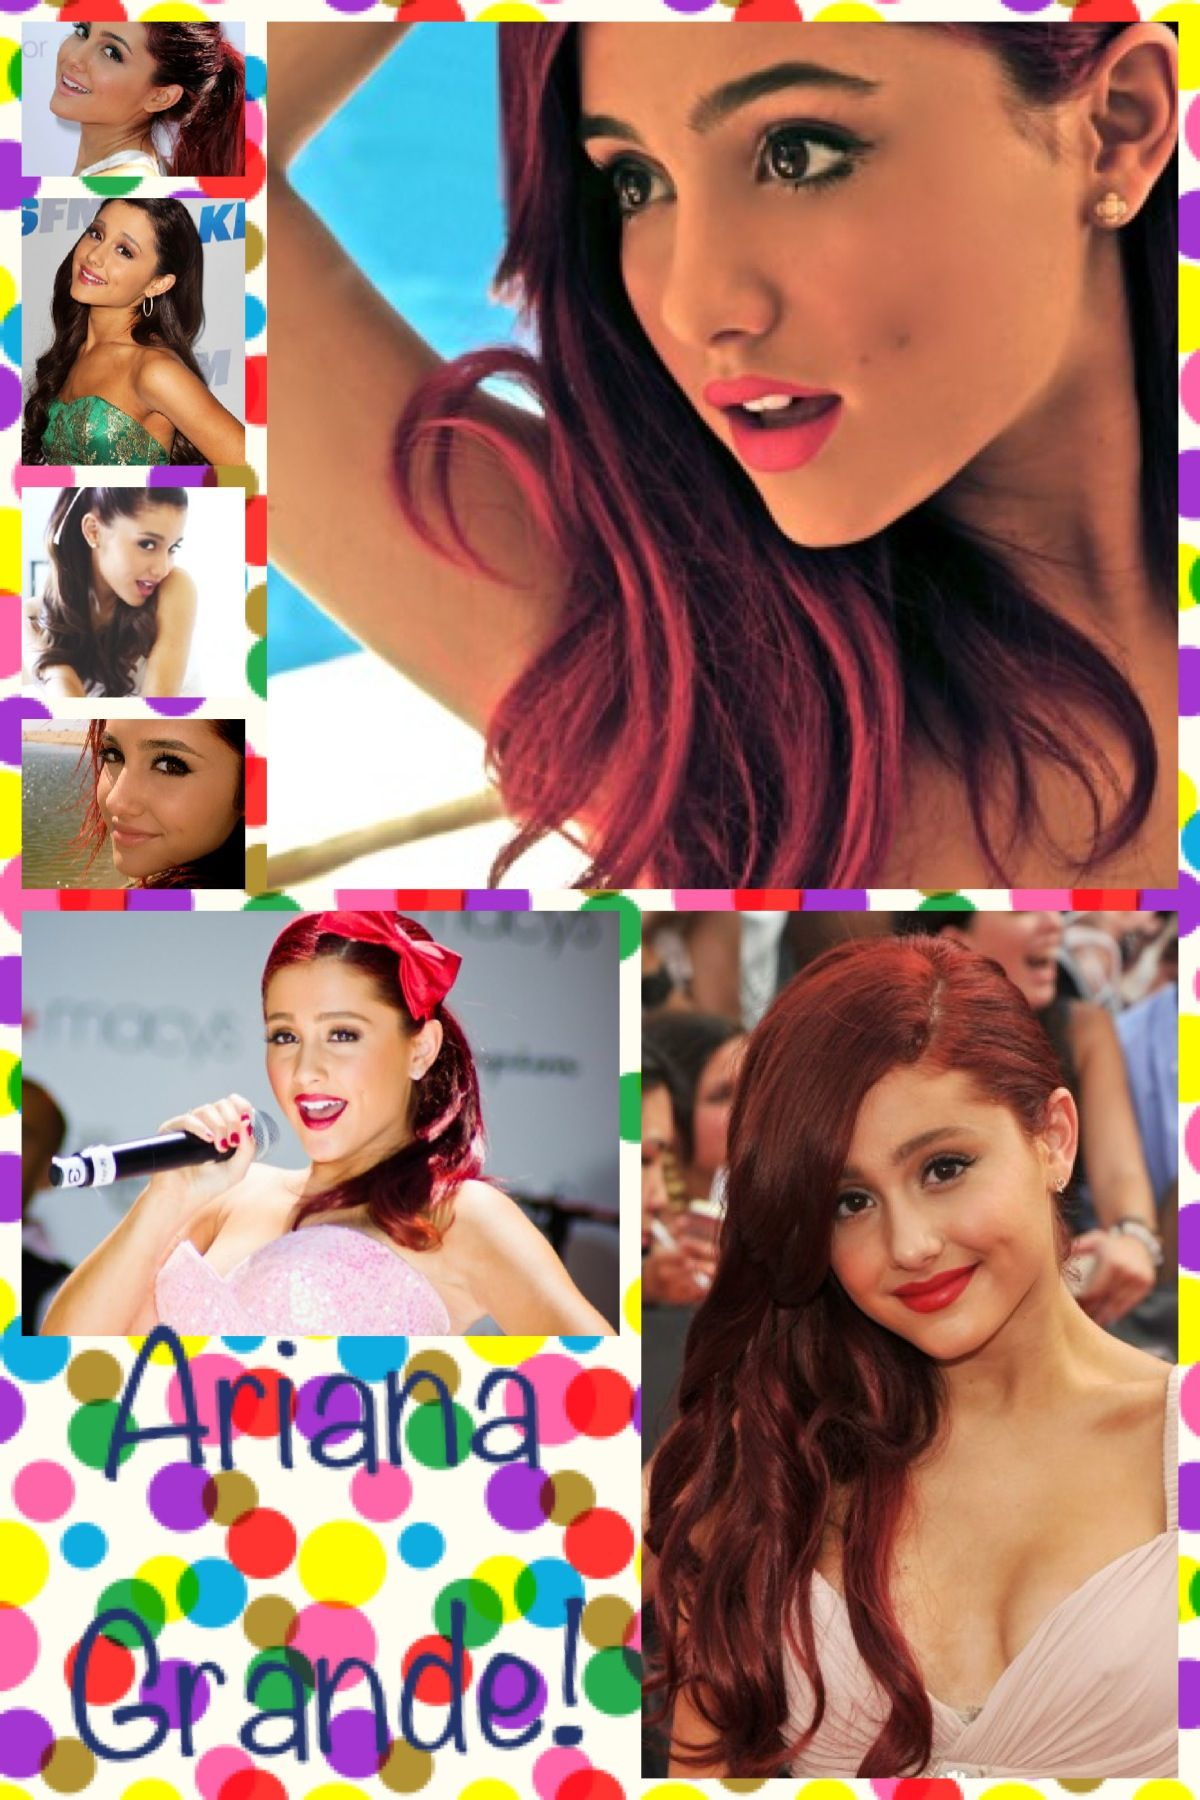 @Ariana Bourke Grande This is for her.... Might go 2 her LA concert and meet her!!! Entered the radio disney contest!!! #ArianaGrande #LoveAri @Ariana Bourke Grande @Ariana Bourke Grande